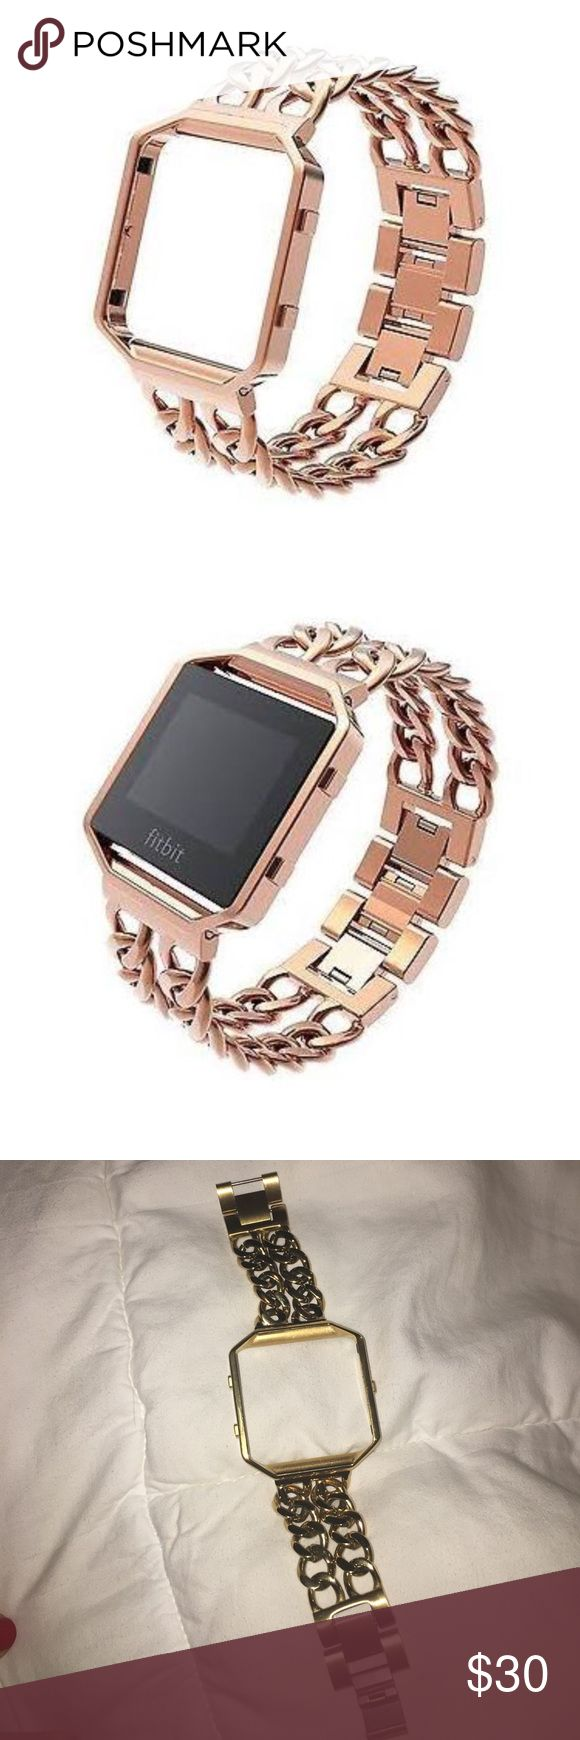 Brand New Fitbit Blaze gold chain bracelet Size 5.3'-6.1 (small). Dress up your Fitbit band with every outfit with this fashionable accessory while still reaching your fitness goals. Jewelry Bracelets